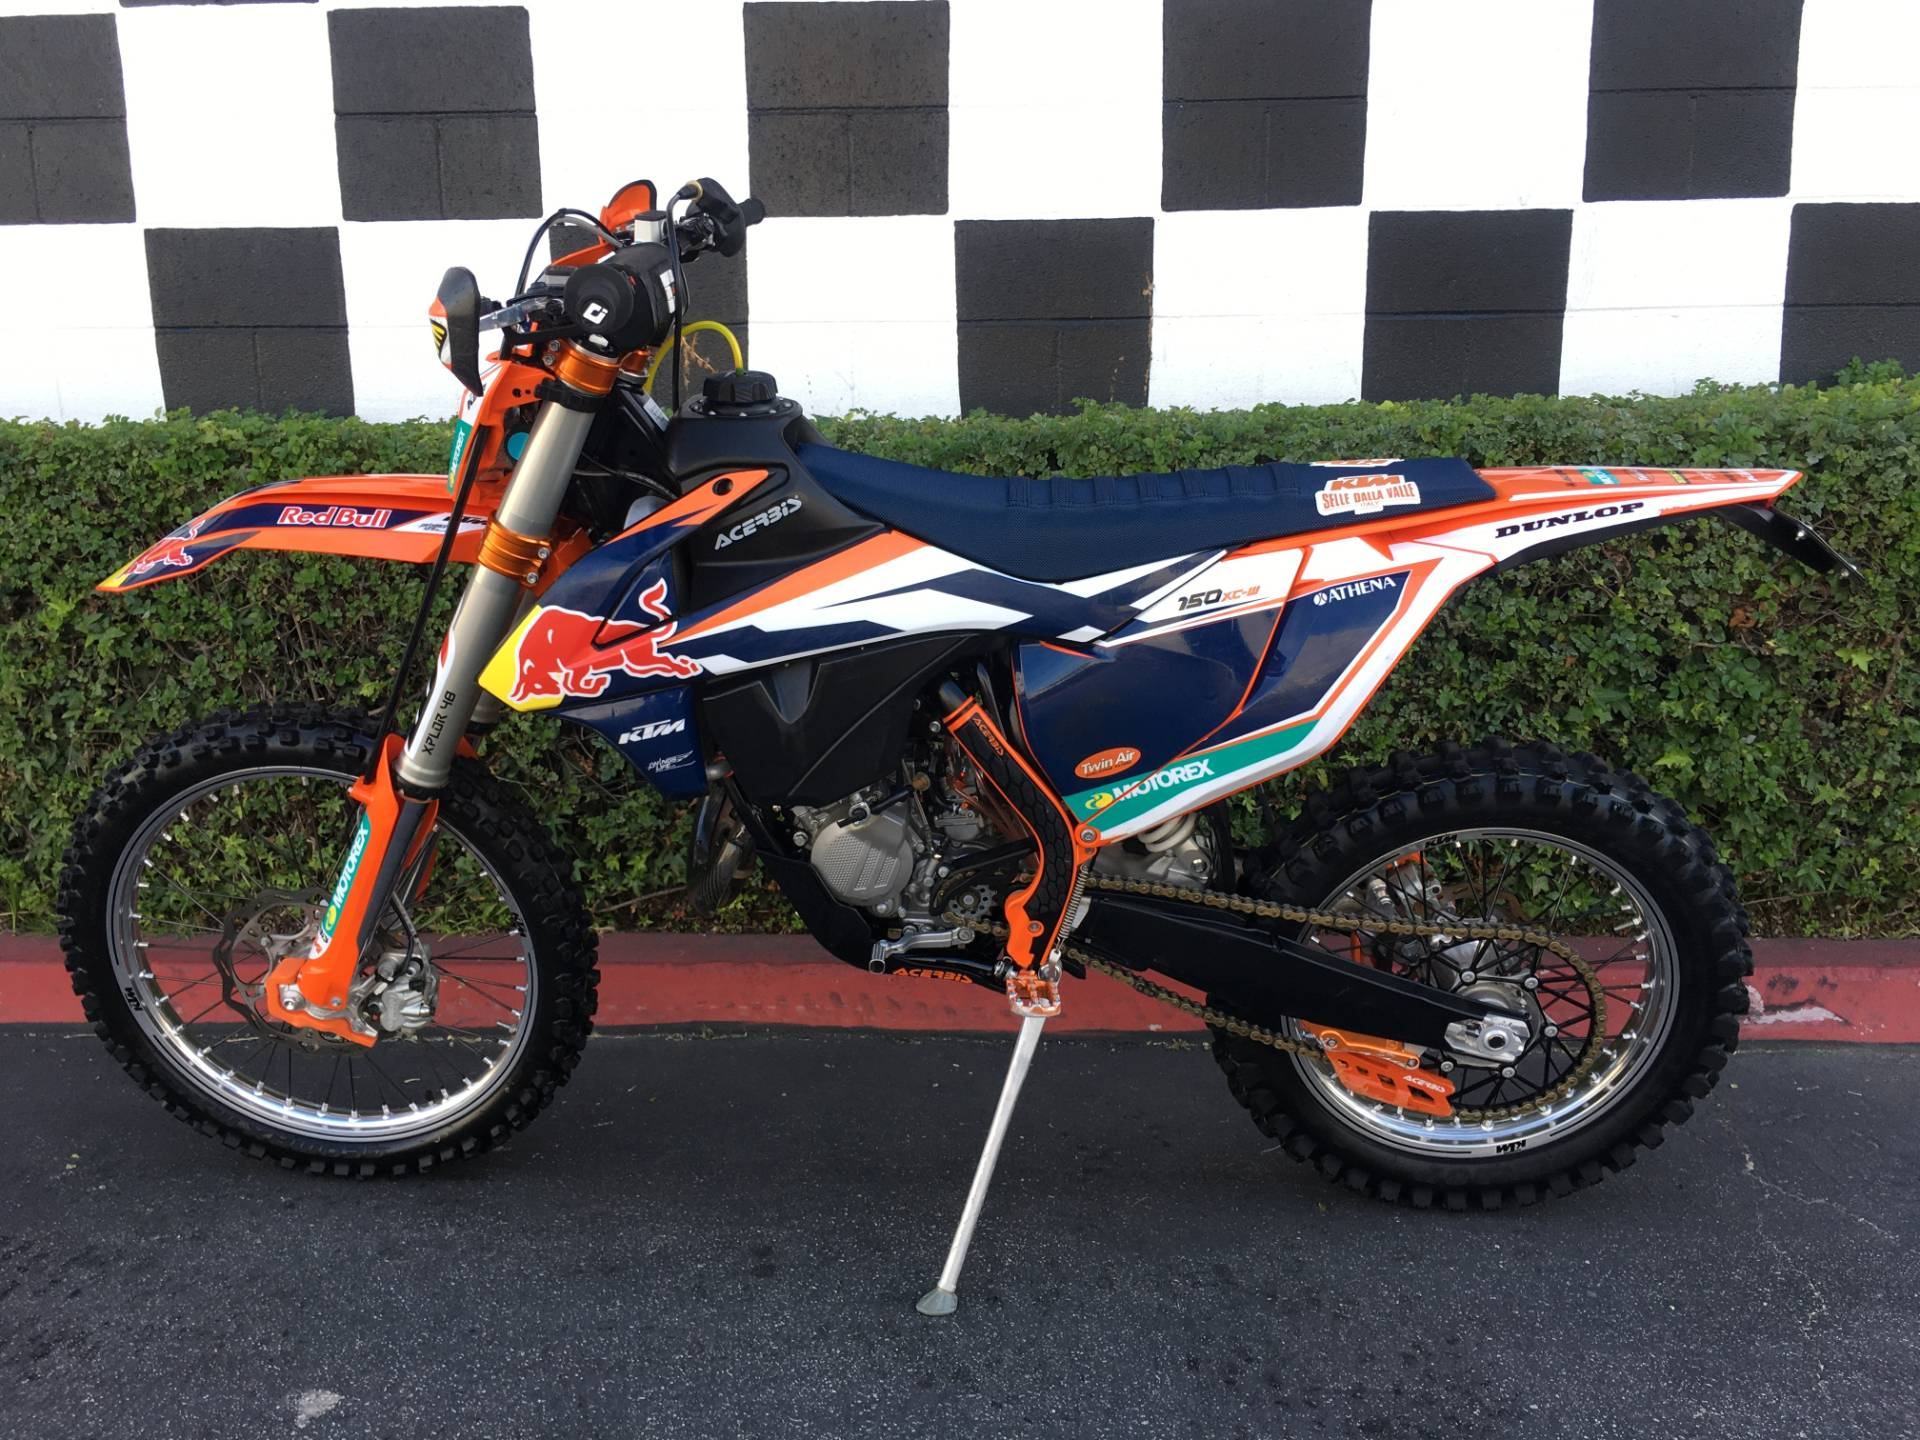 2017 KTM 150 XC-W in Costa Mesa, California - Photo 2